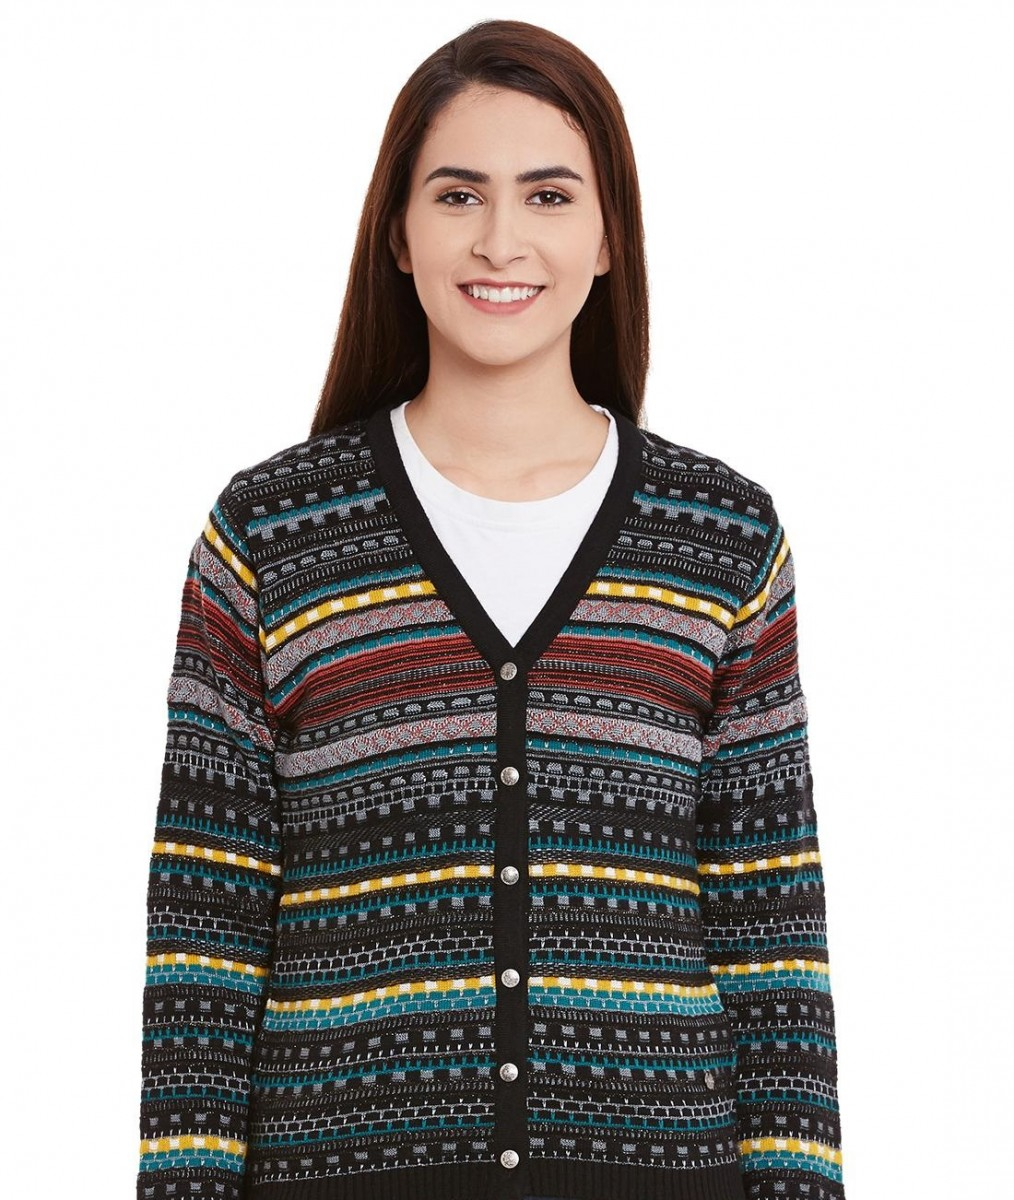 Monte Carlo multi-colored printed cardigan with black base